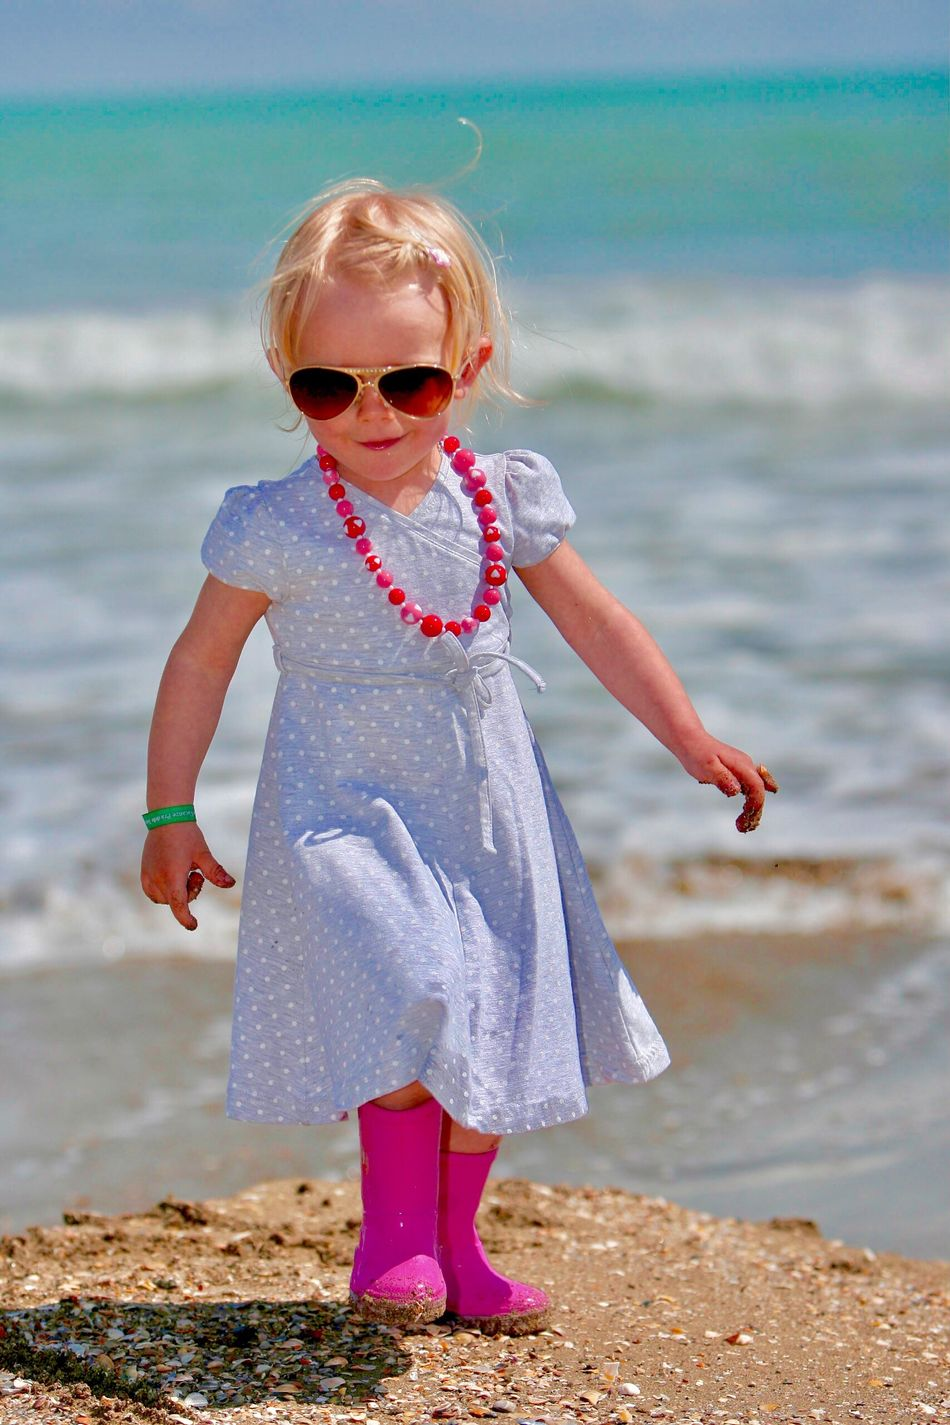 Little Polish girl of typical Slavic fashion dressed up and exceptionally dressed for the sea pink roses, pink necklace and sunglasses Sunny escaped mum for this blue dress against the turquoise Italian coast in the area of Venice Sunglasses One Person Real People Childhood Sea Sand Standing Elementary Age Leisure Activity Outdoors Fashion Cute Girl Water Lifestyles Focus On Foreground Front View Little Polish Girl Fashionable Travel Travel Destinations Italy Coastline